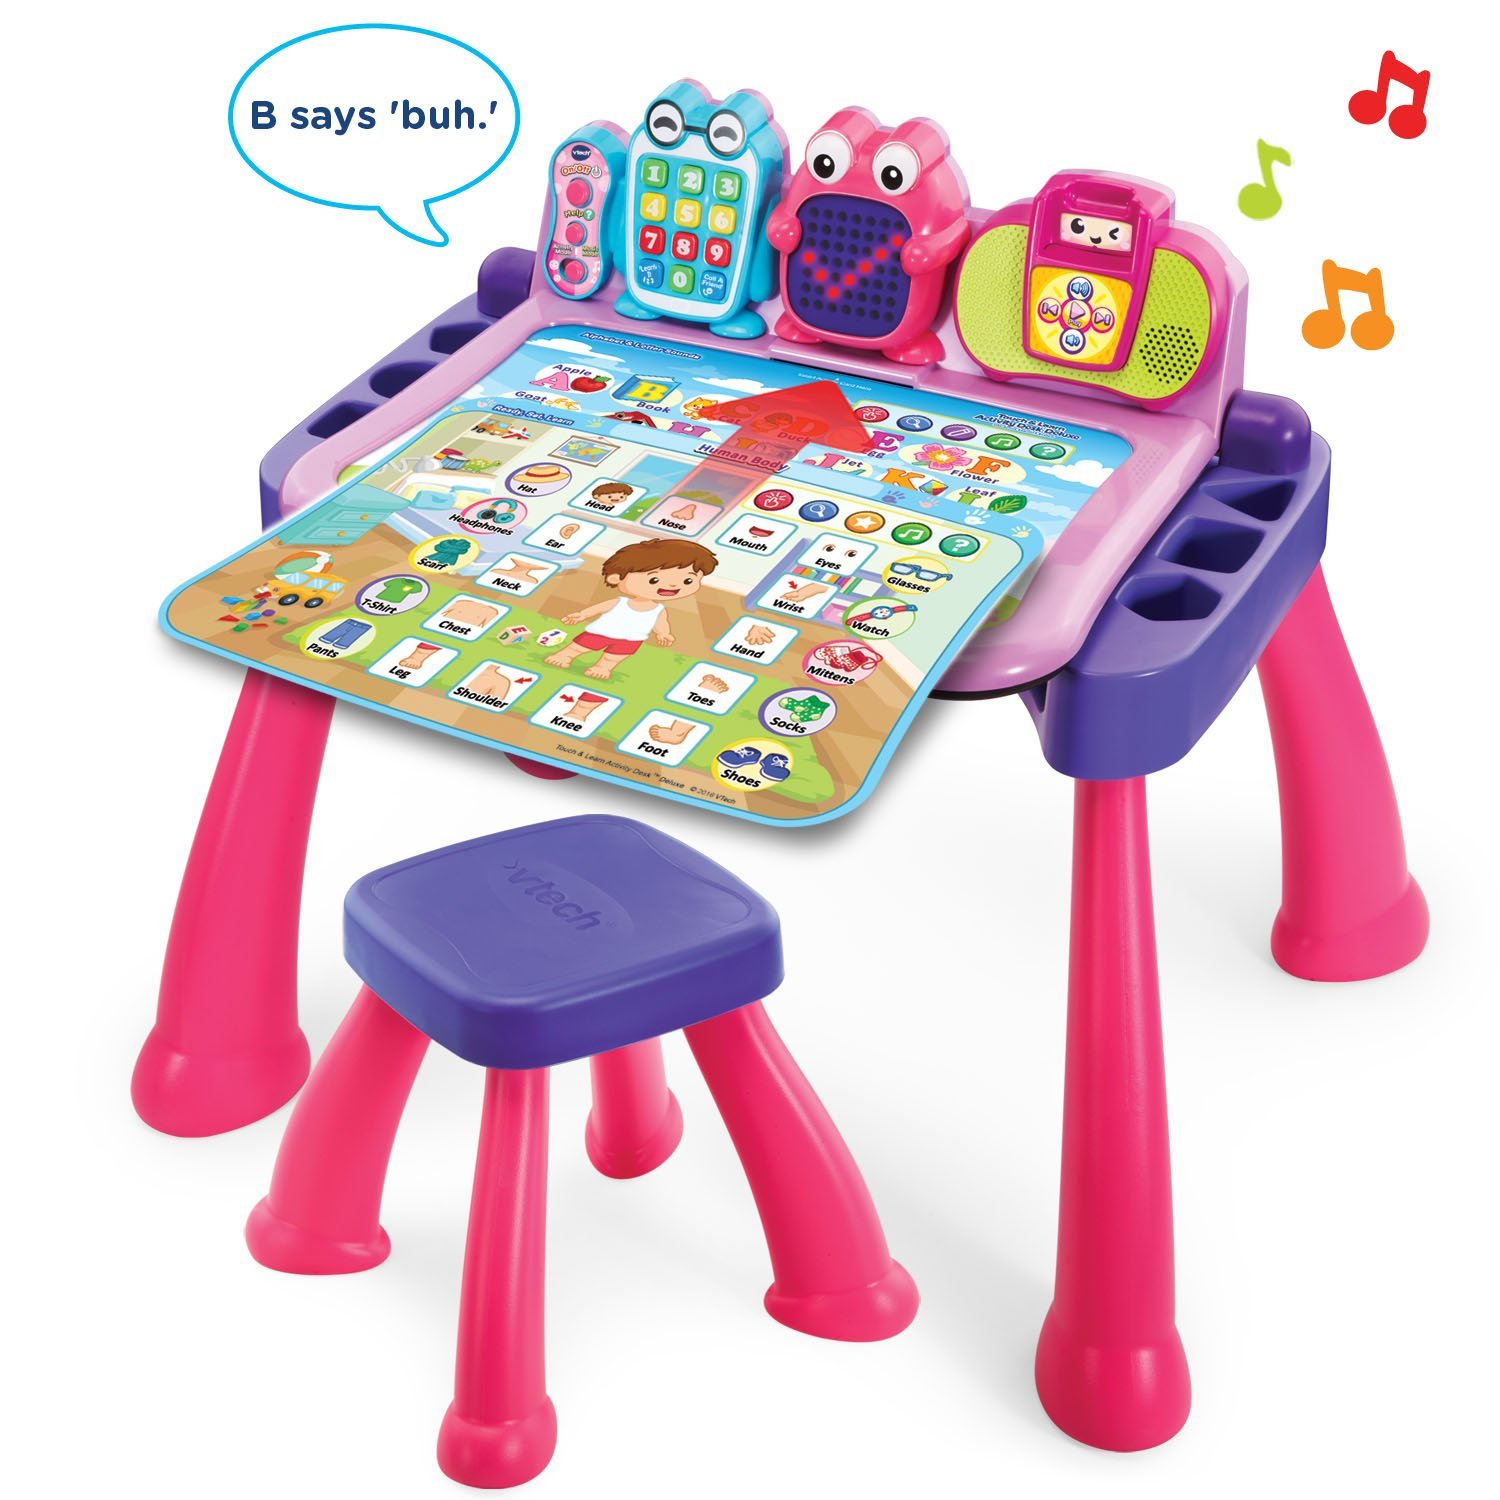 Vtech Touch And Learn Activity Desk Deluxe Pink Amazon